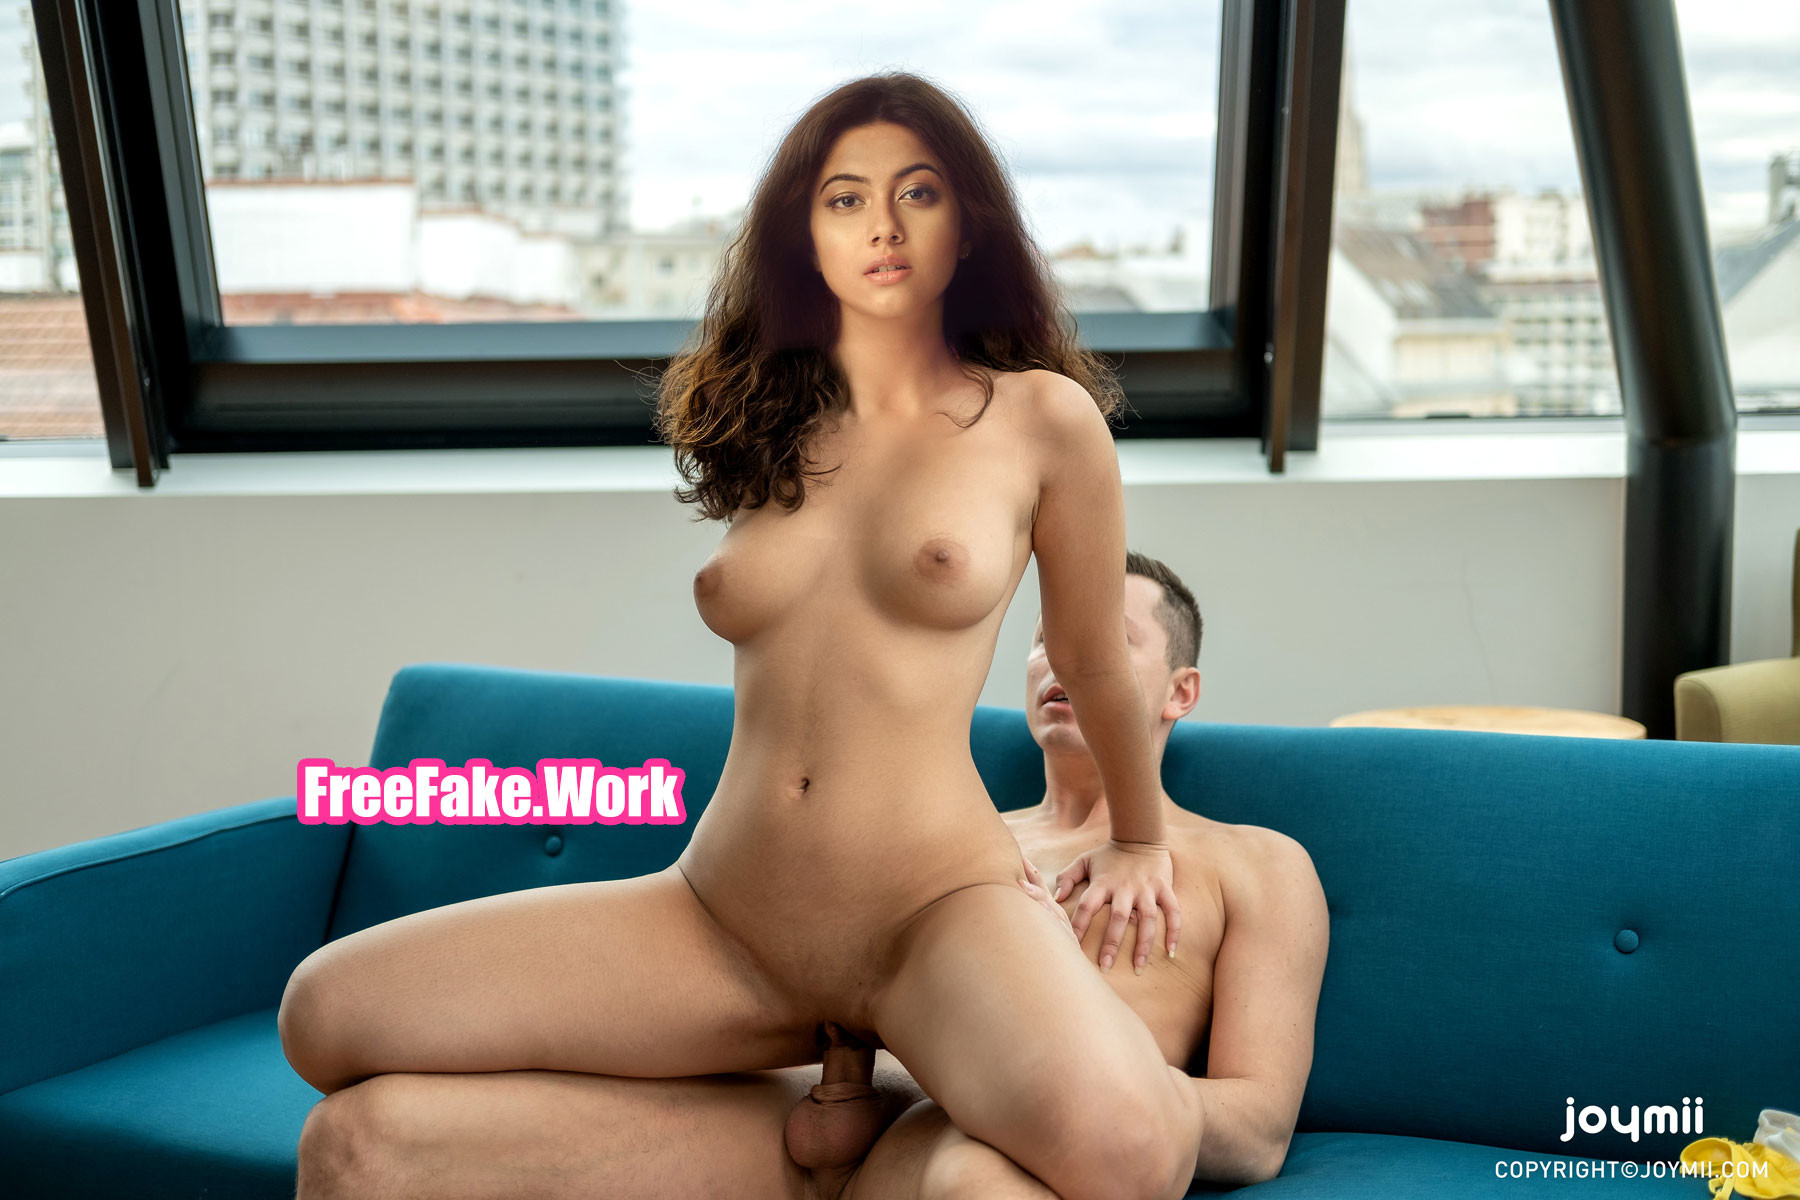 Sexy-boobs-Reem-Sameer-Shaikh-fucking-on-top-naked-casting-couch.jpg